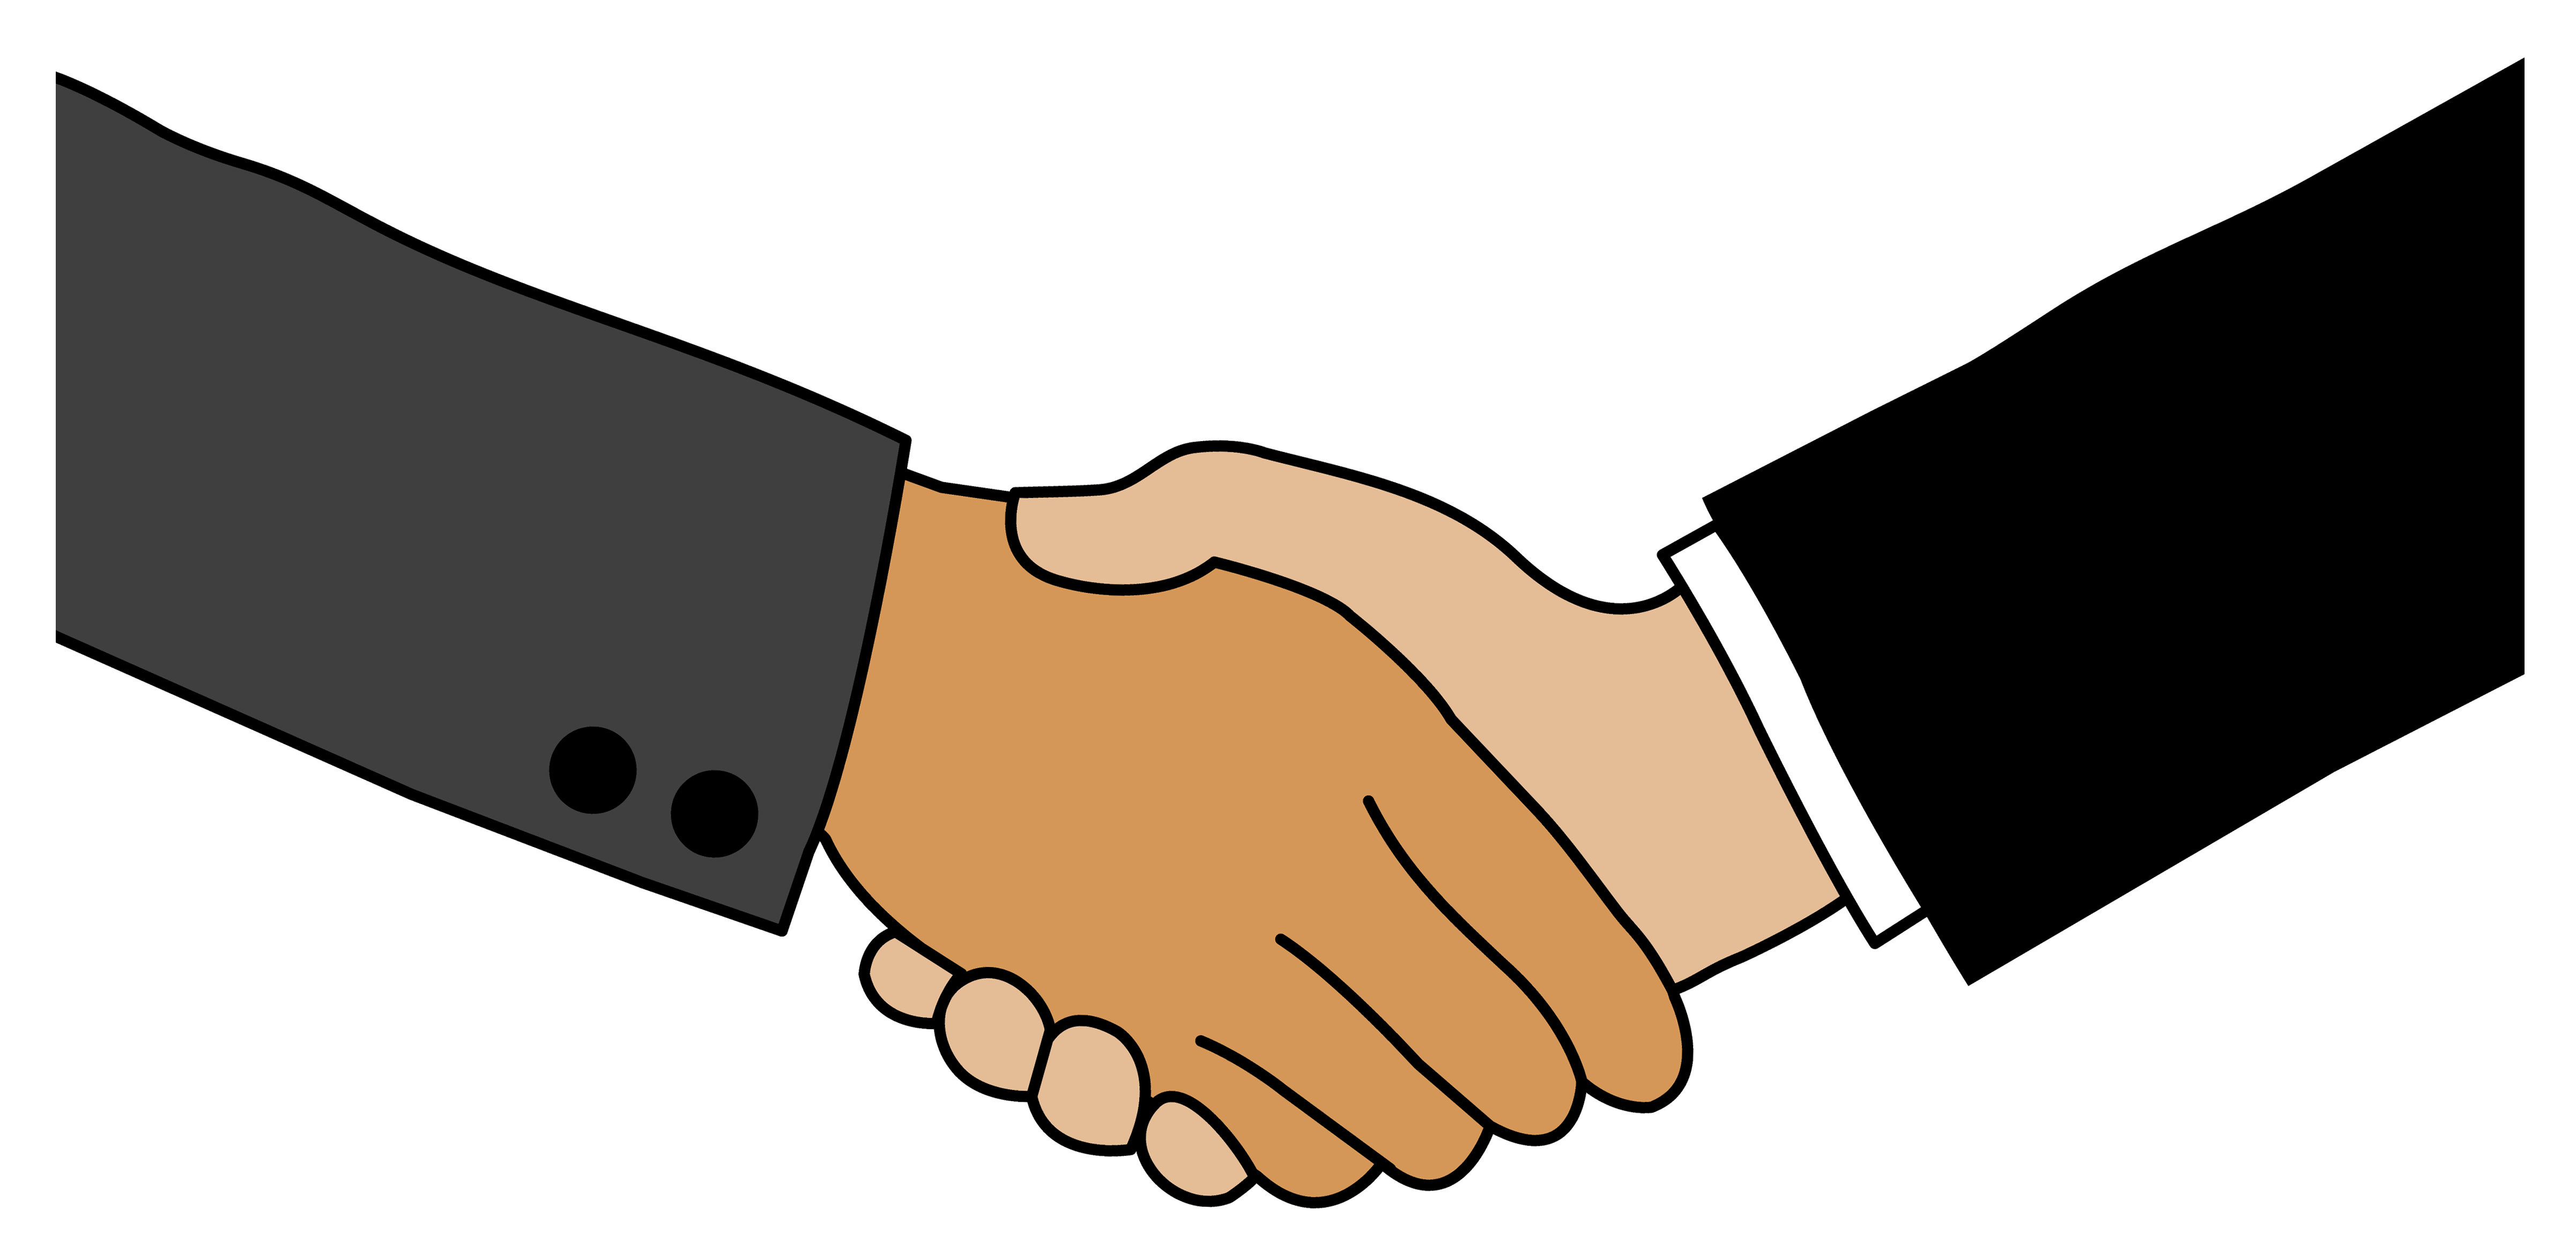 Business clipart hand shaking Business Greeting Clip People Handshake